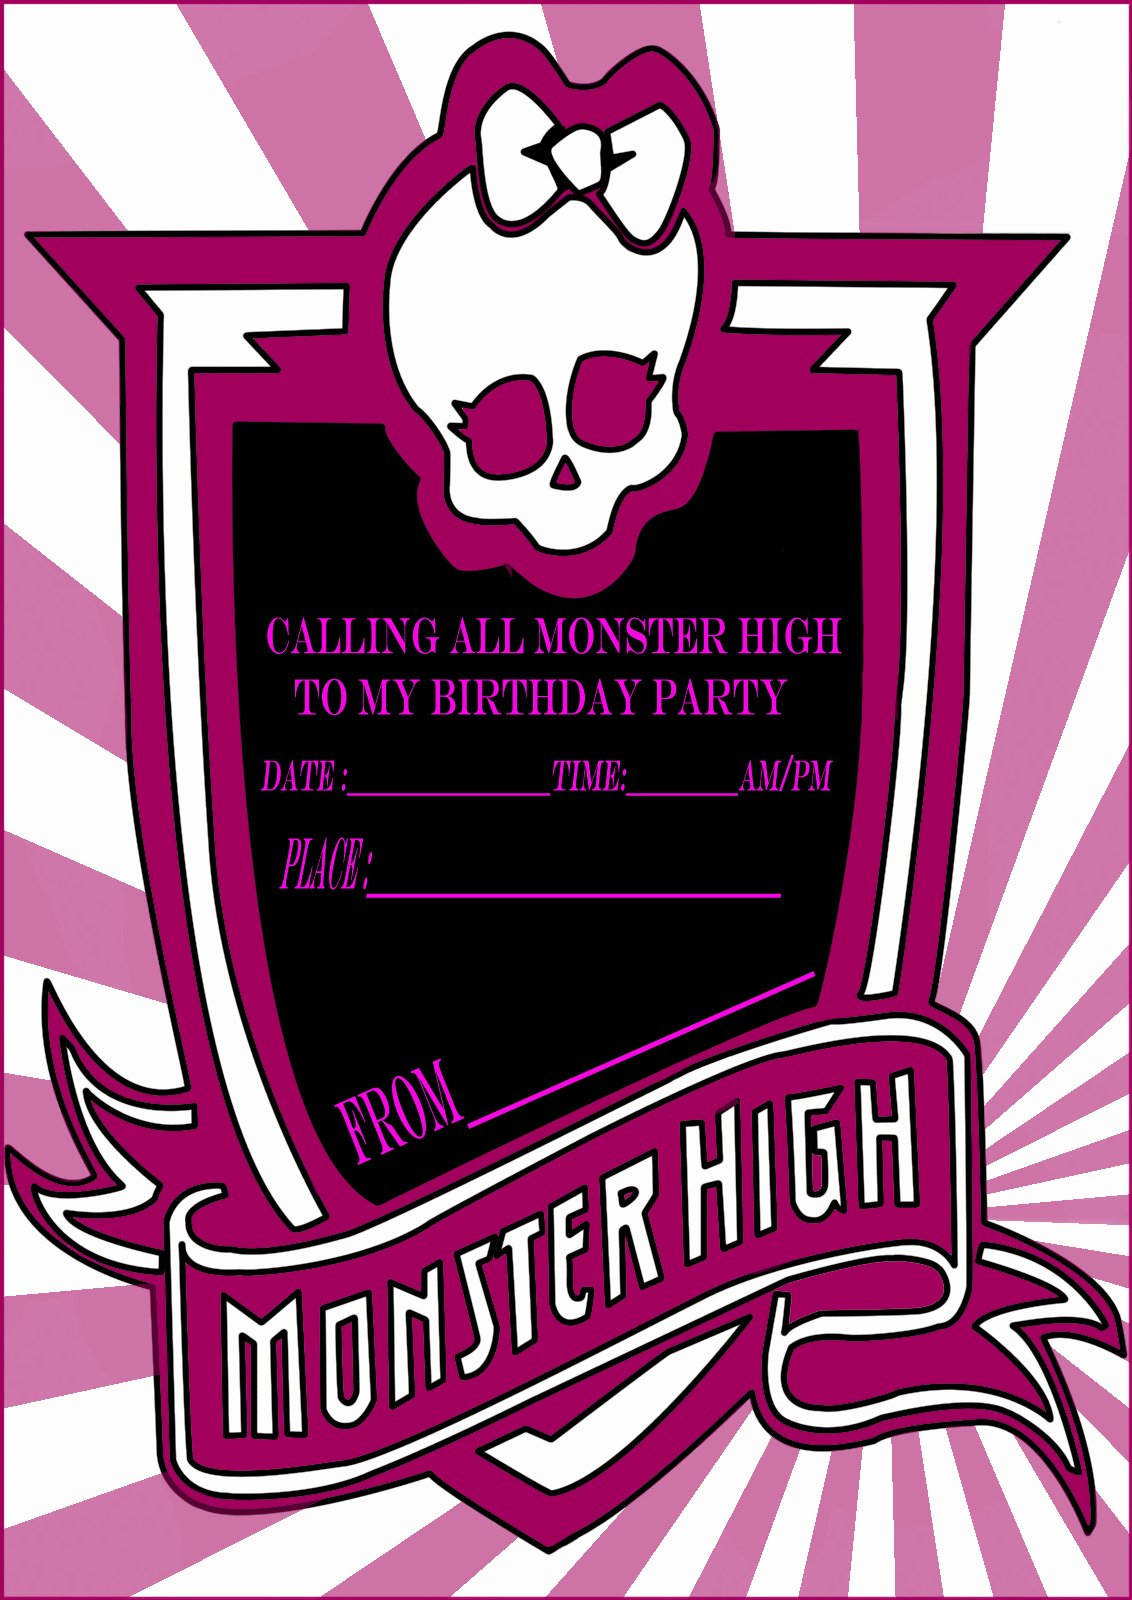 Monster High Invitations Templates Inspirational Monster High Party Invitation Card